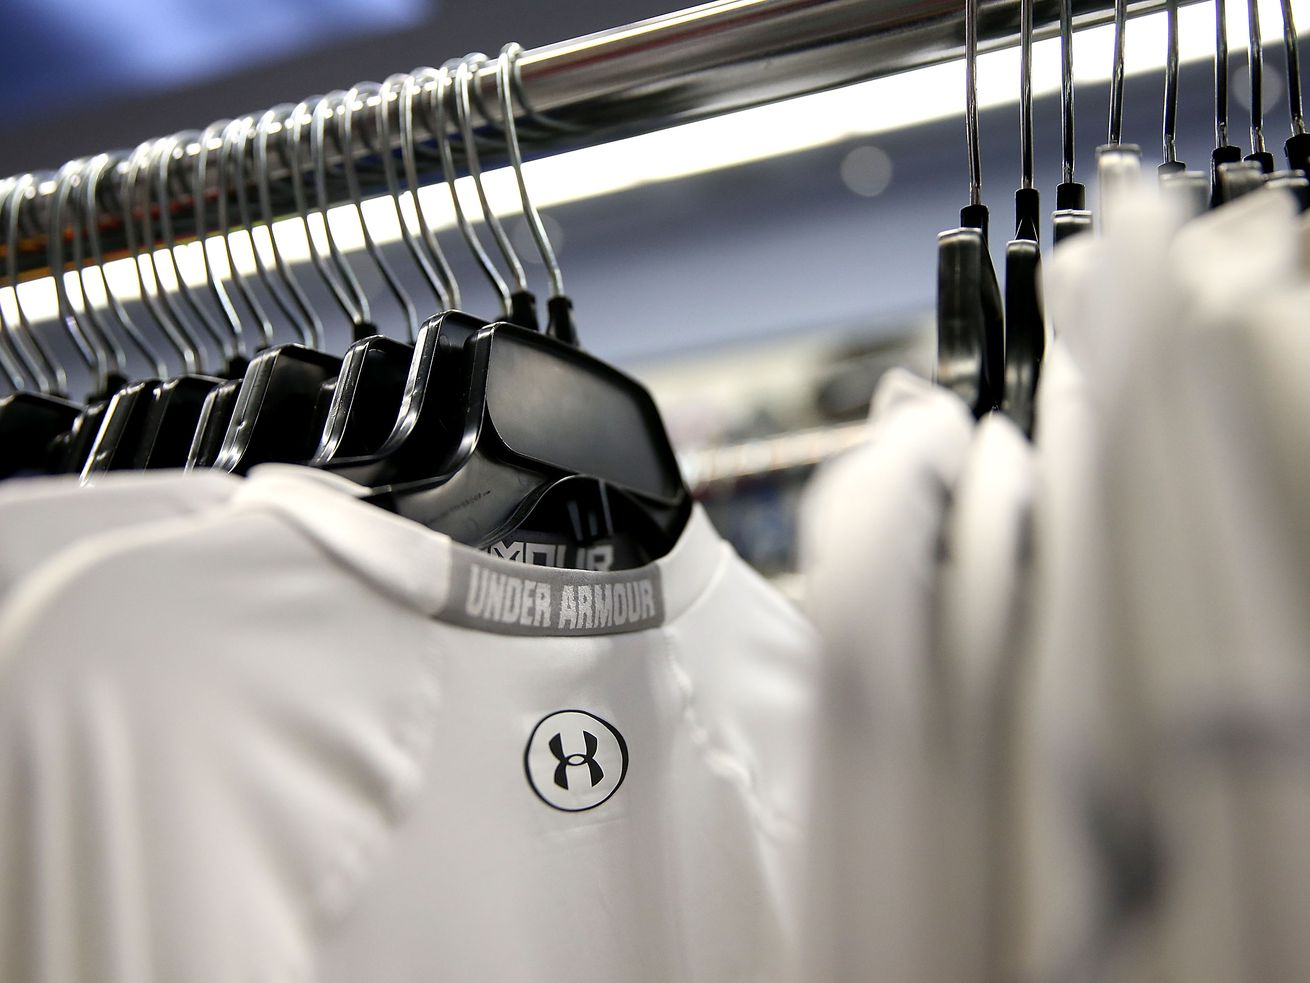 A Facebook post raised fears that Under Armour clothes are flammable.